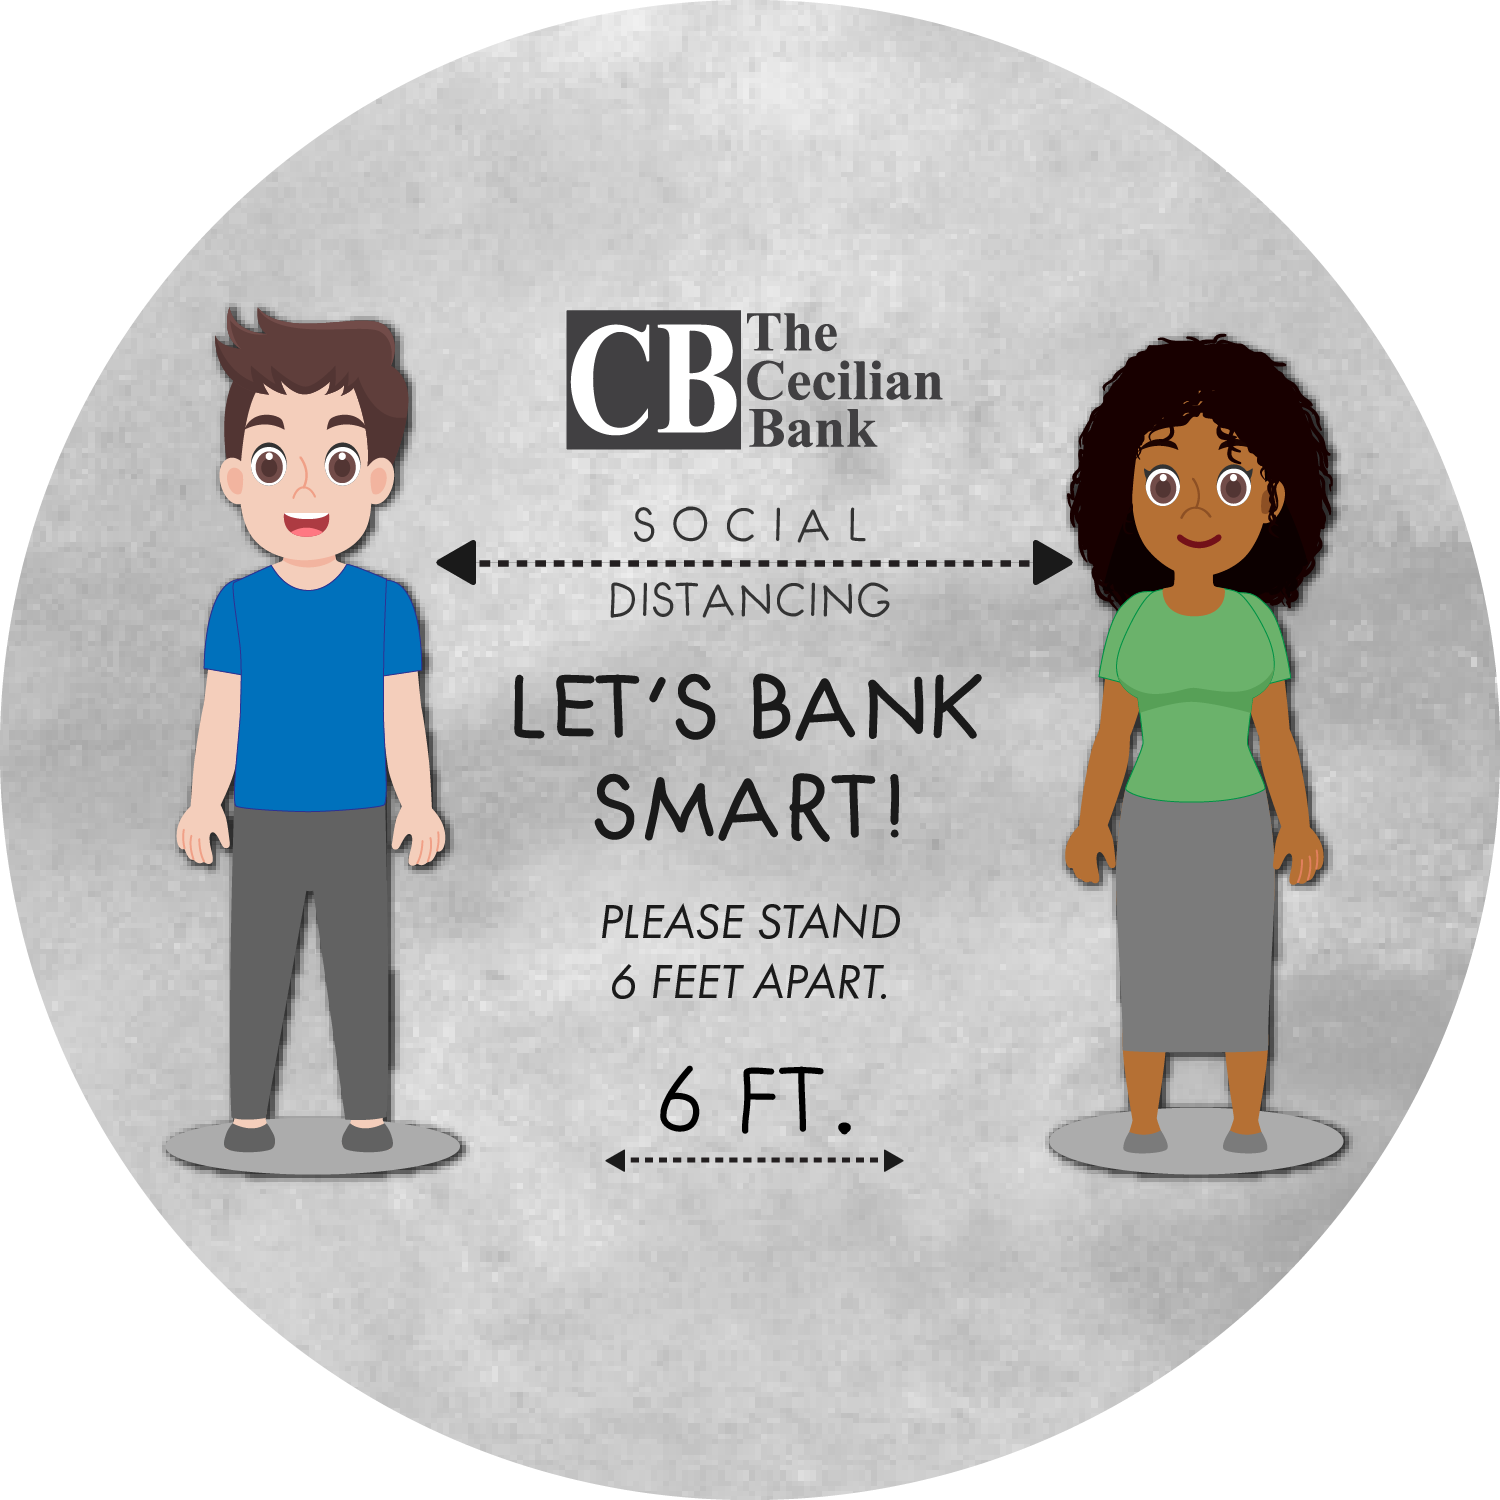 Let's Bank Smart - 6 ft. Apart Characters